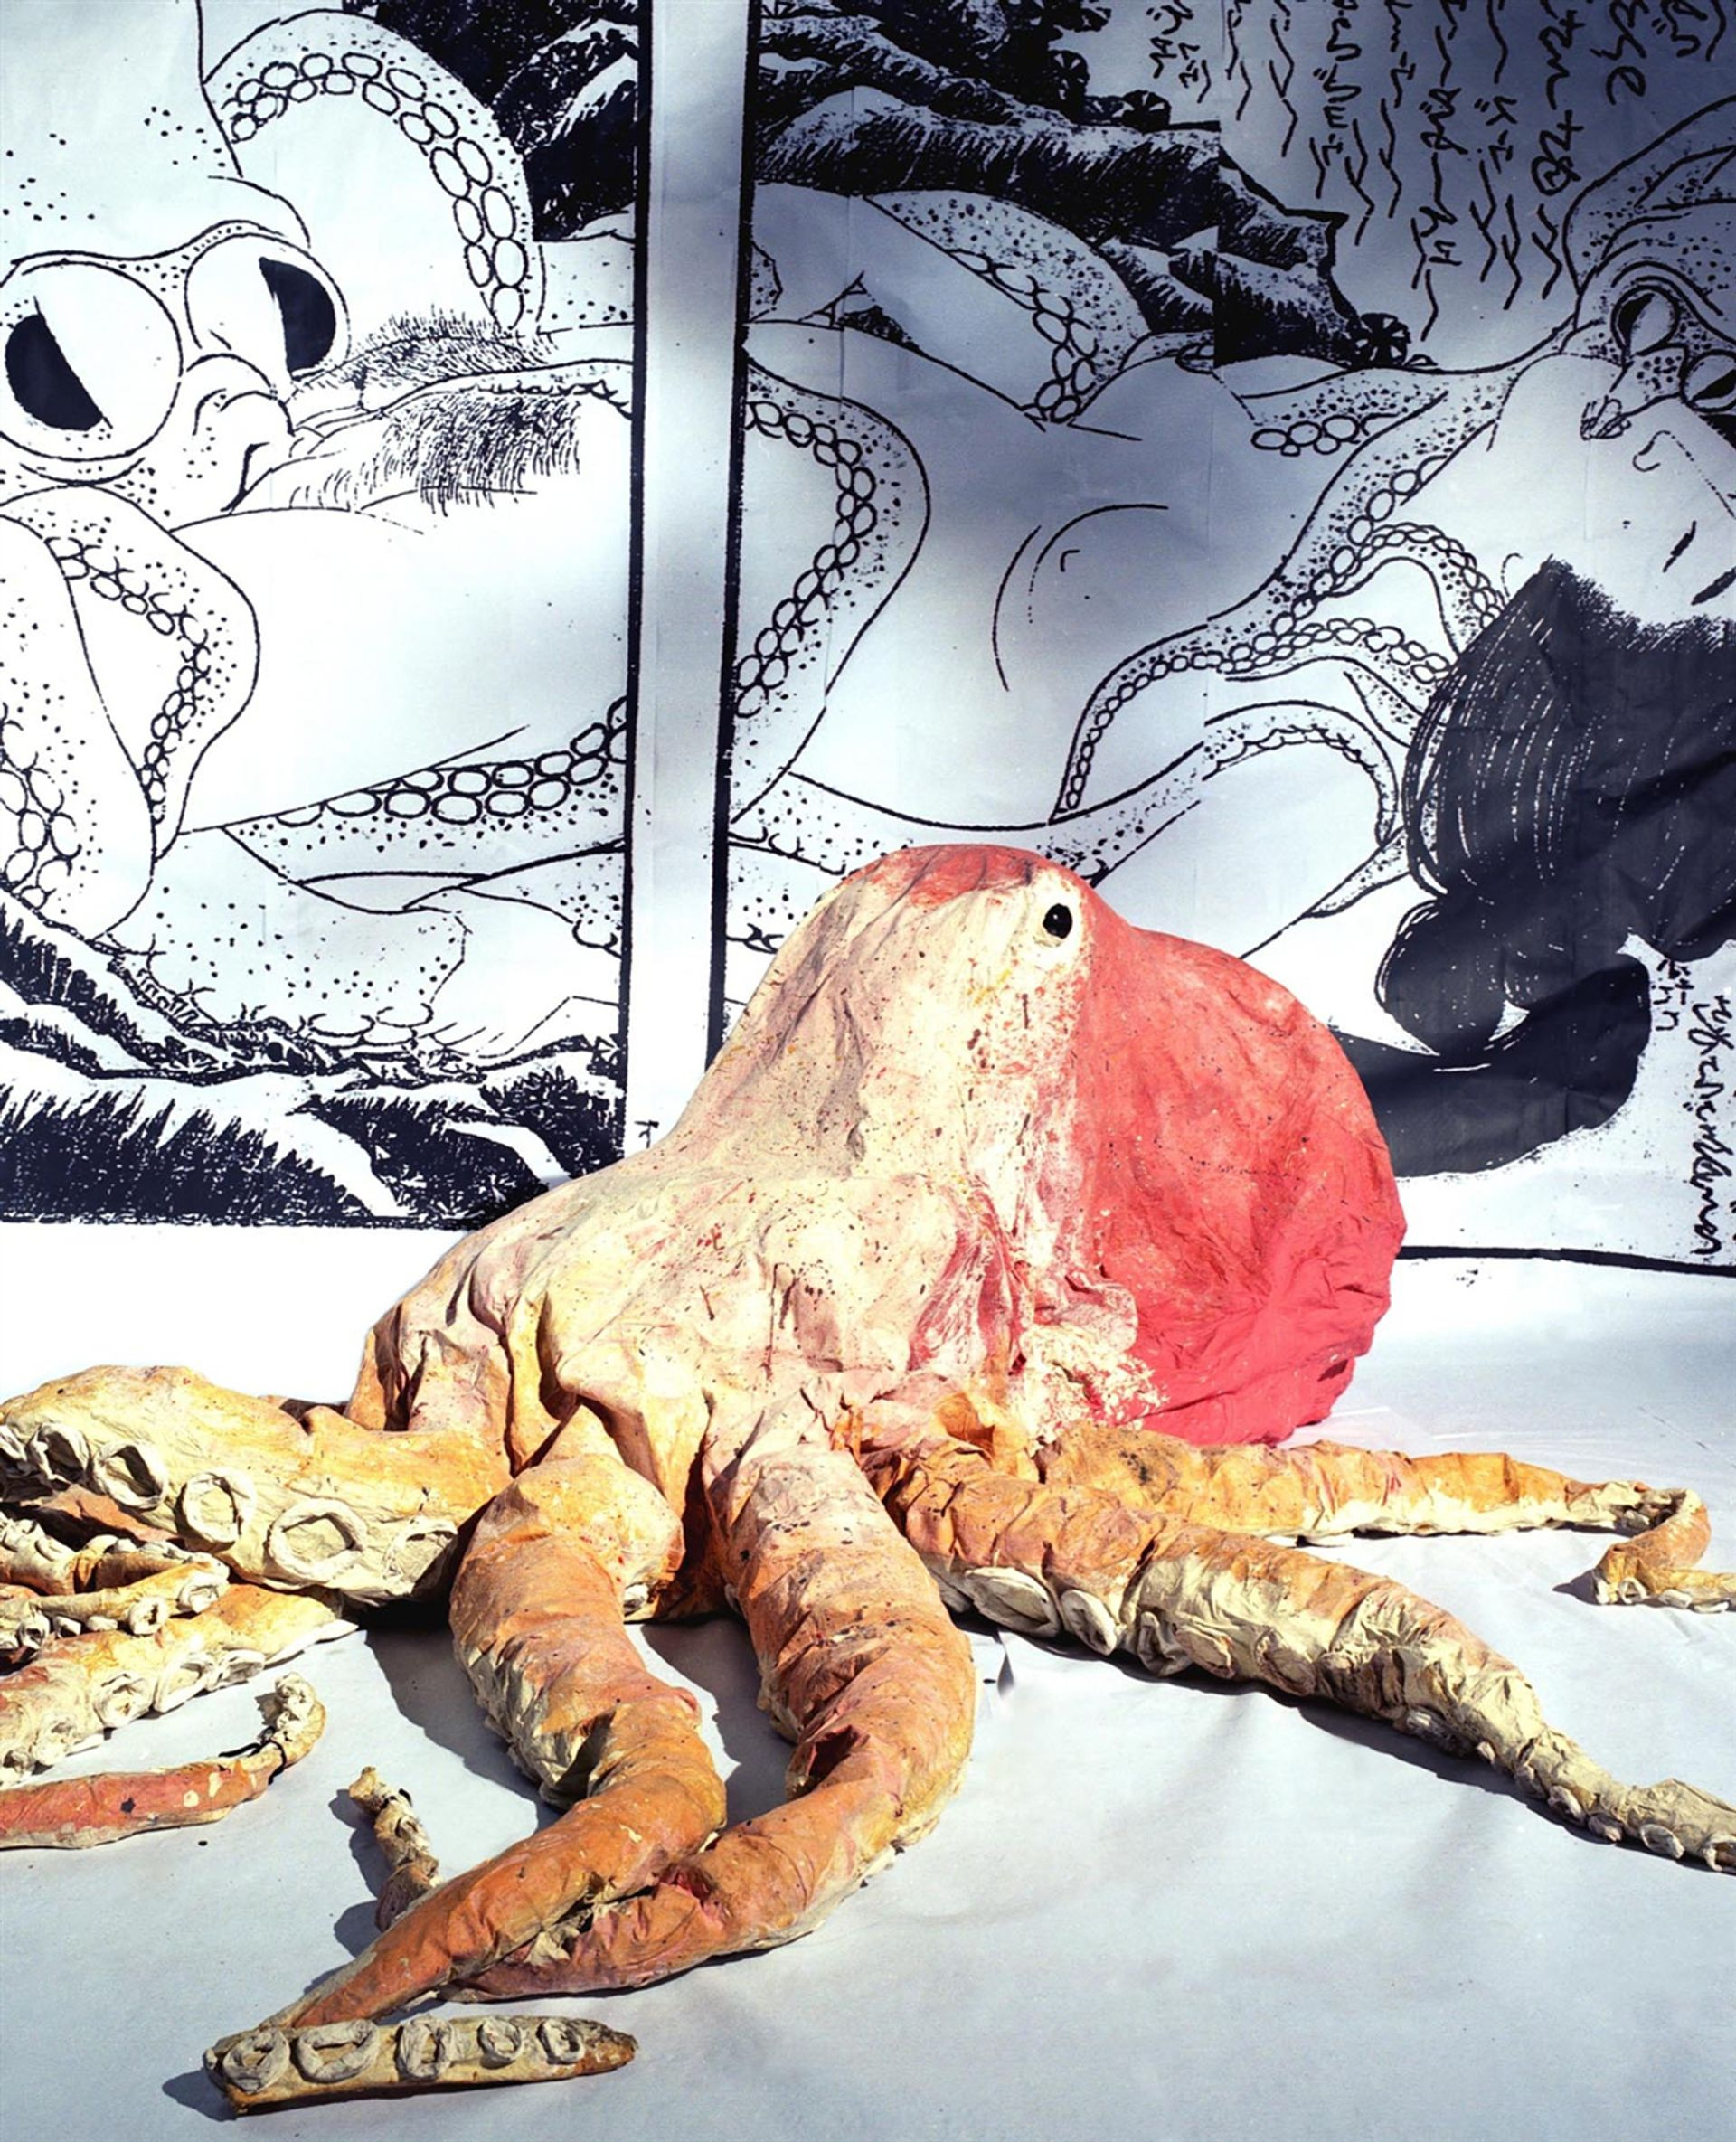 Monster Chetwynd's Hokusai's Octapai (2004) will be included in Sadie Coles HQ's Tempest show in collaboration with  Tanya Leighton gallery © Monster Chetwynd, courtesy Sadie Coles HQ, London.